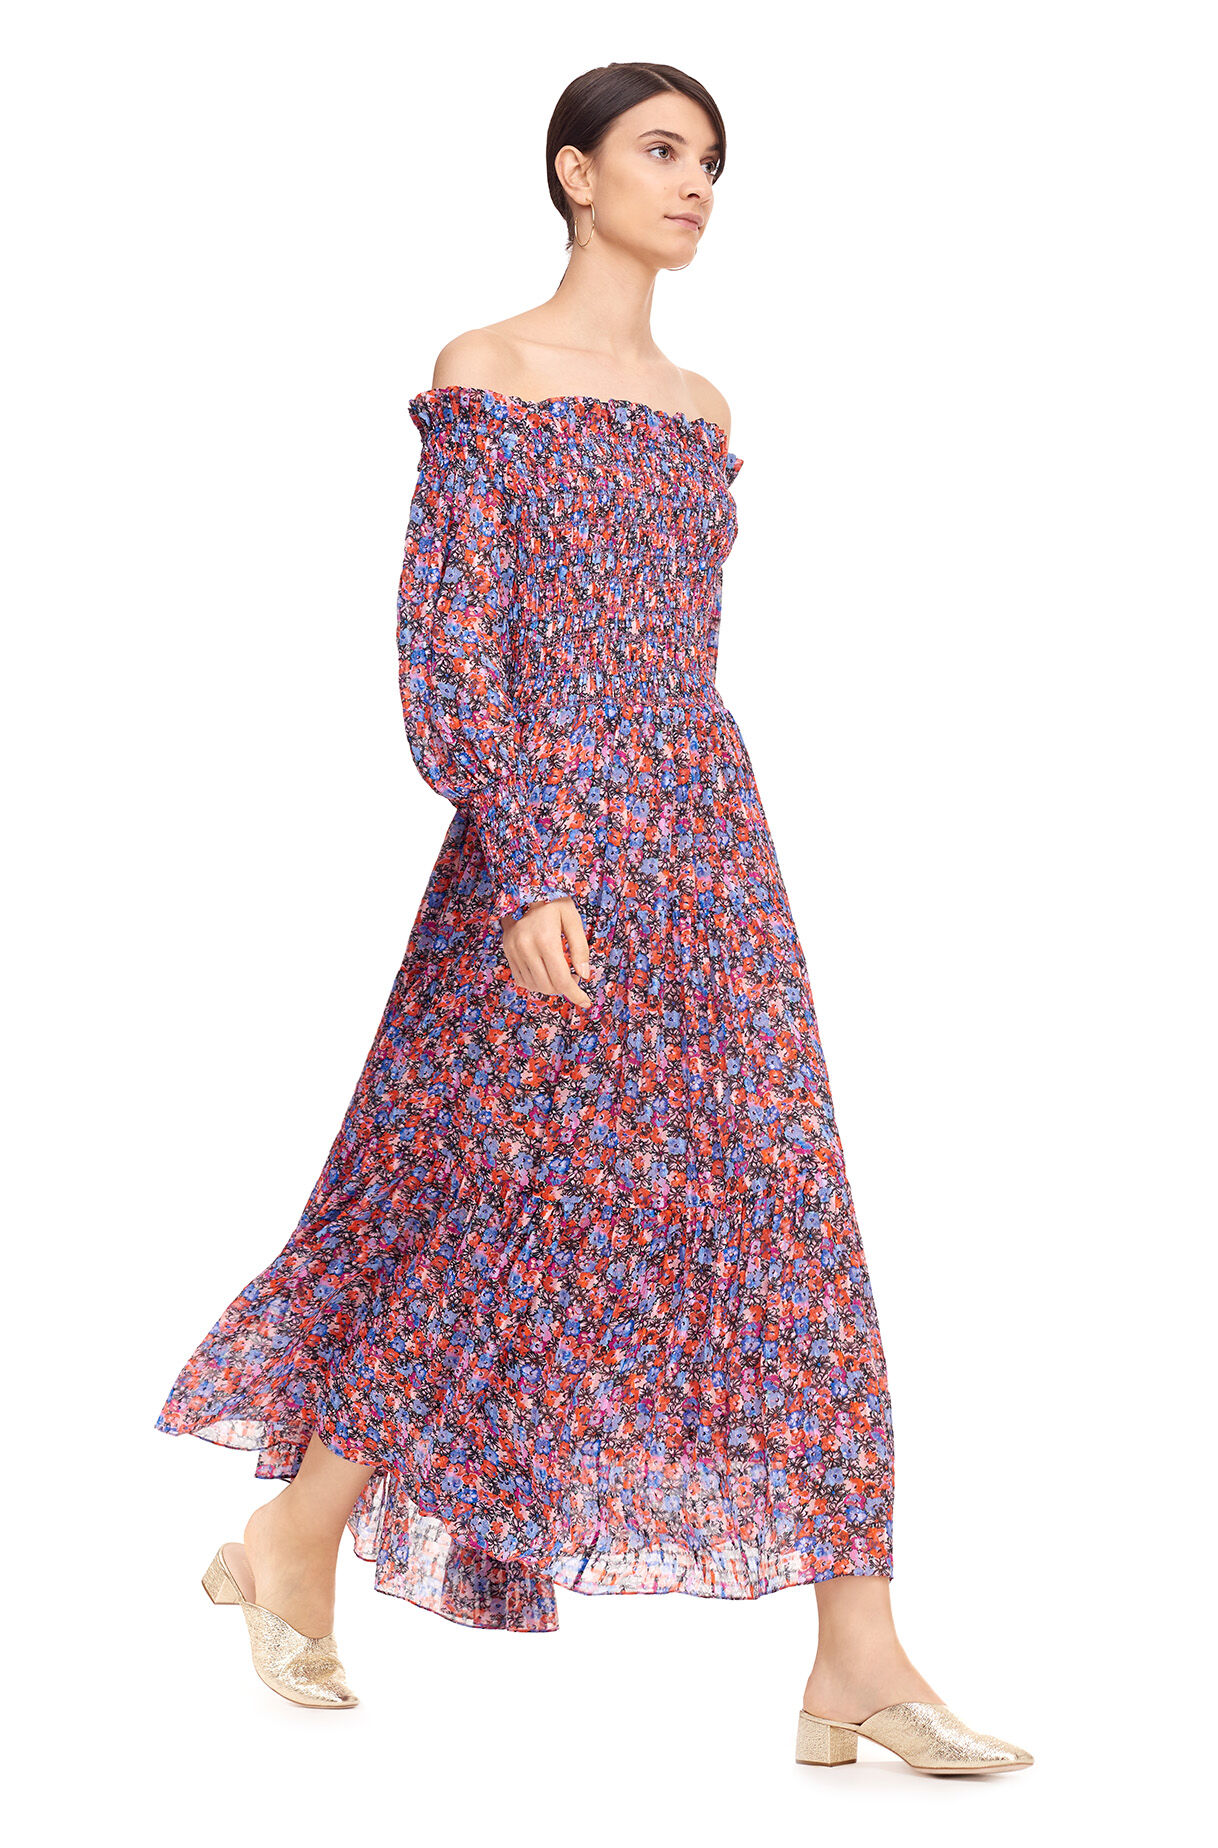 8122fd524278 ... Off-The-Shoulder Cosmic Fleur Print Dress ...